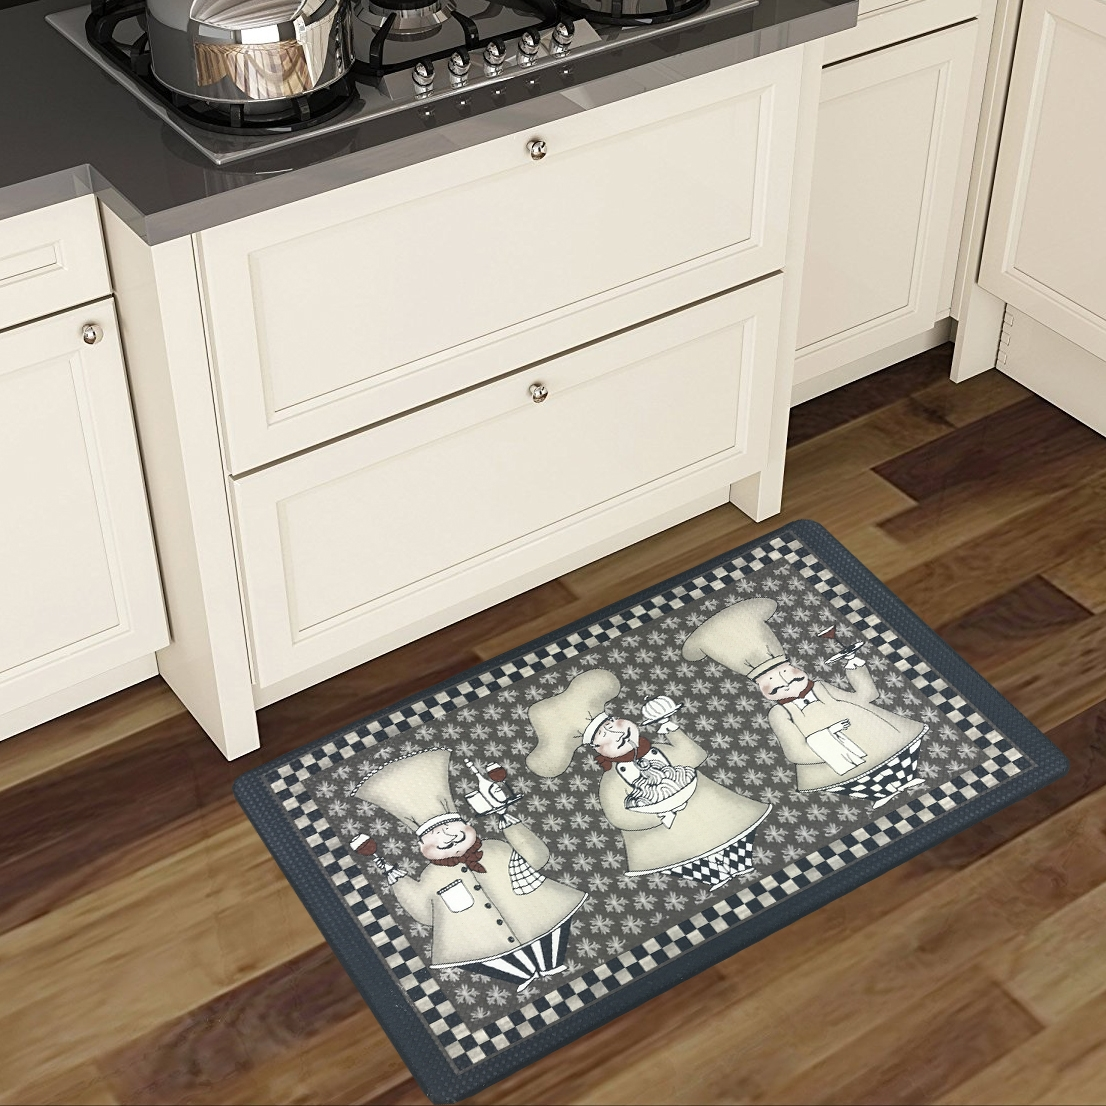 Decorative Kitchen Mats Anti-Fatigue Comfort Floor Mat